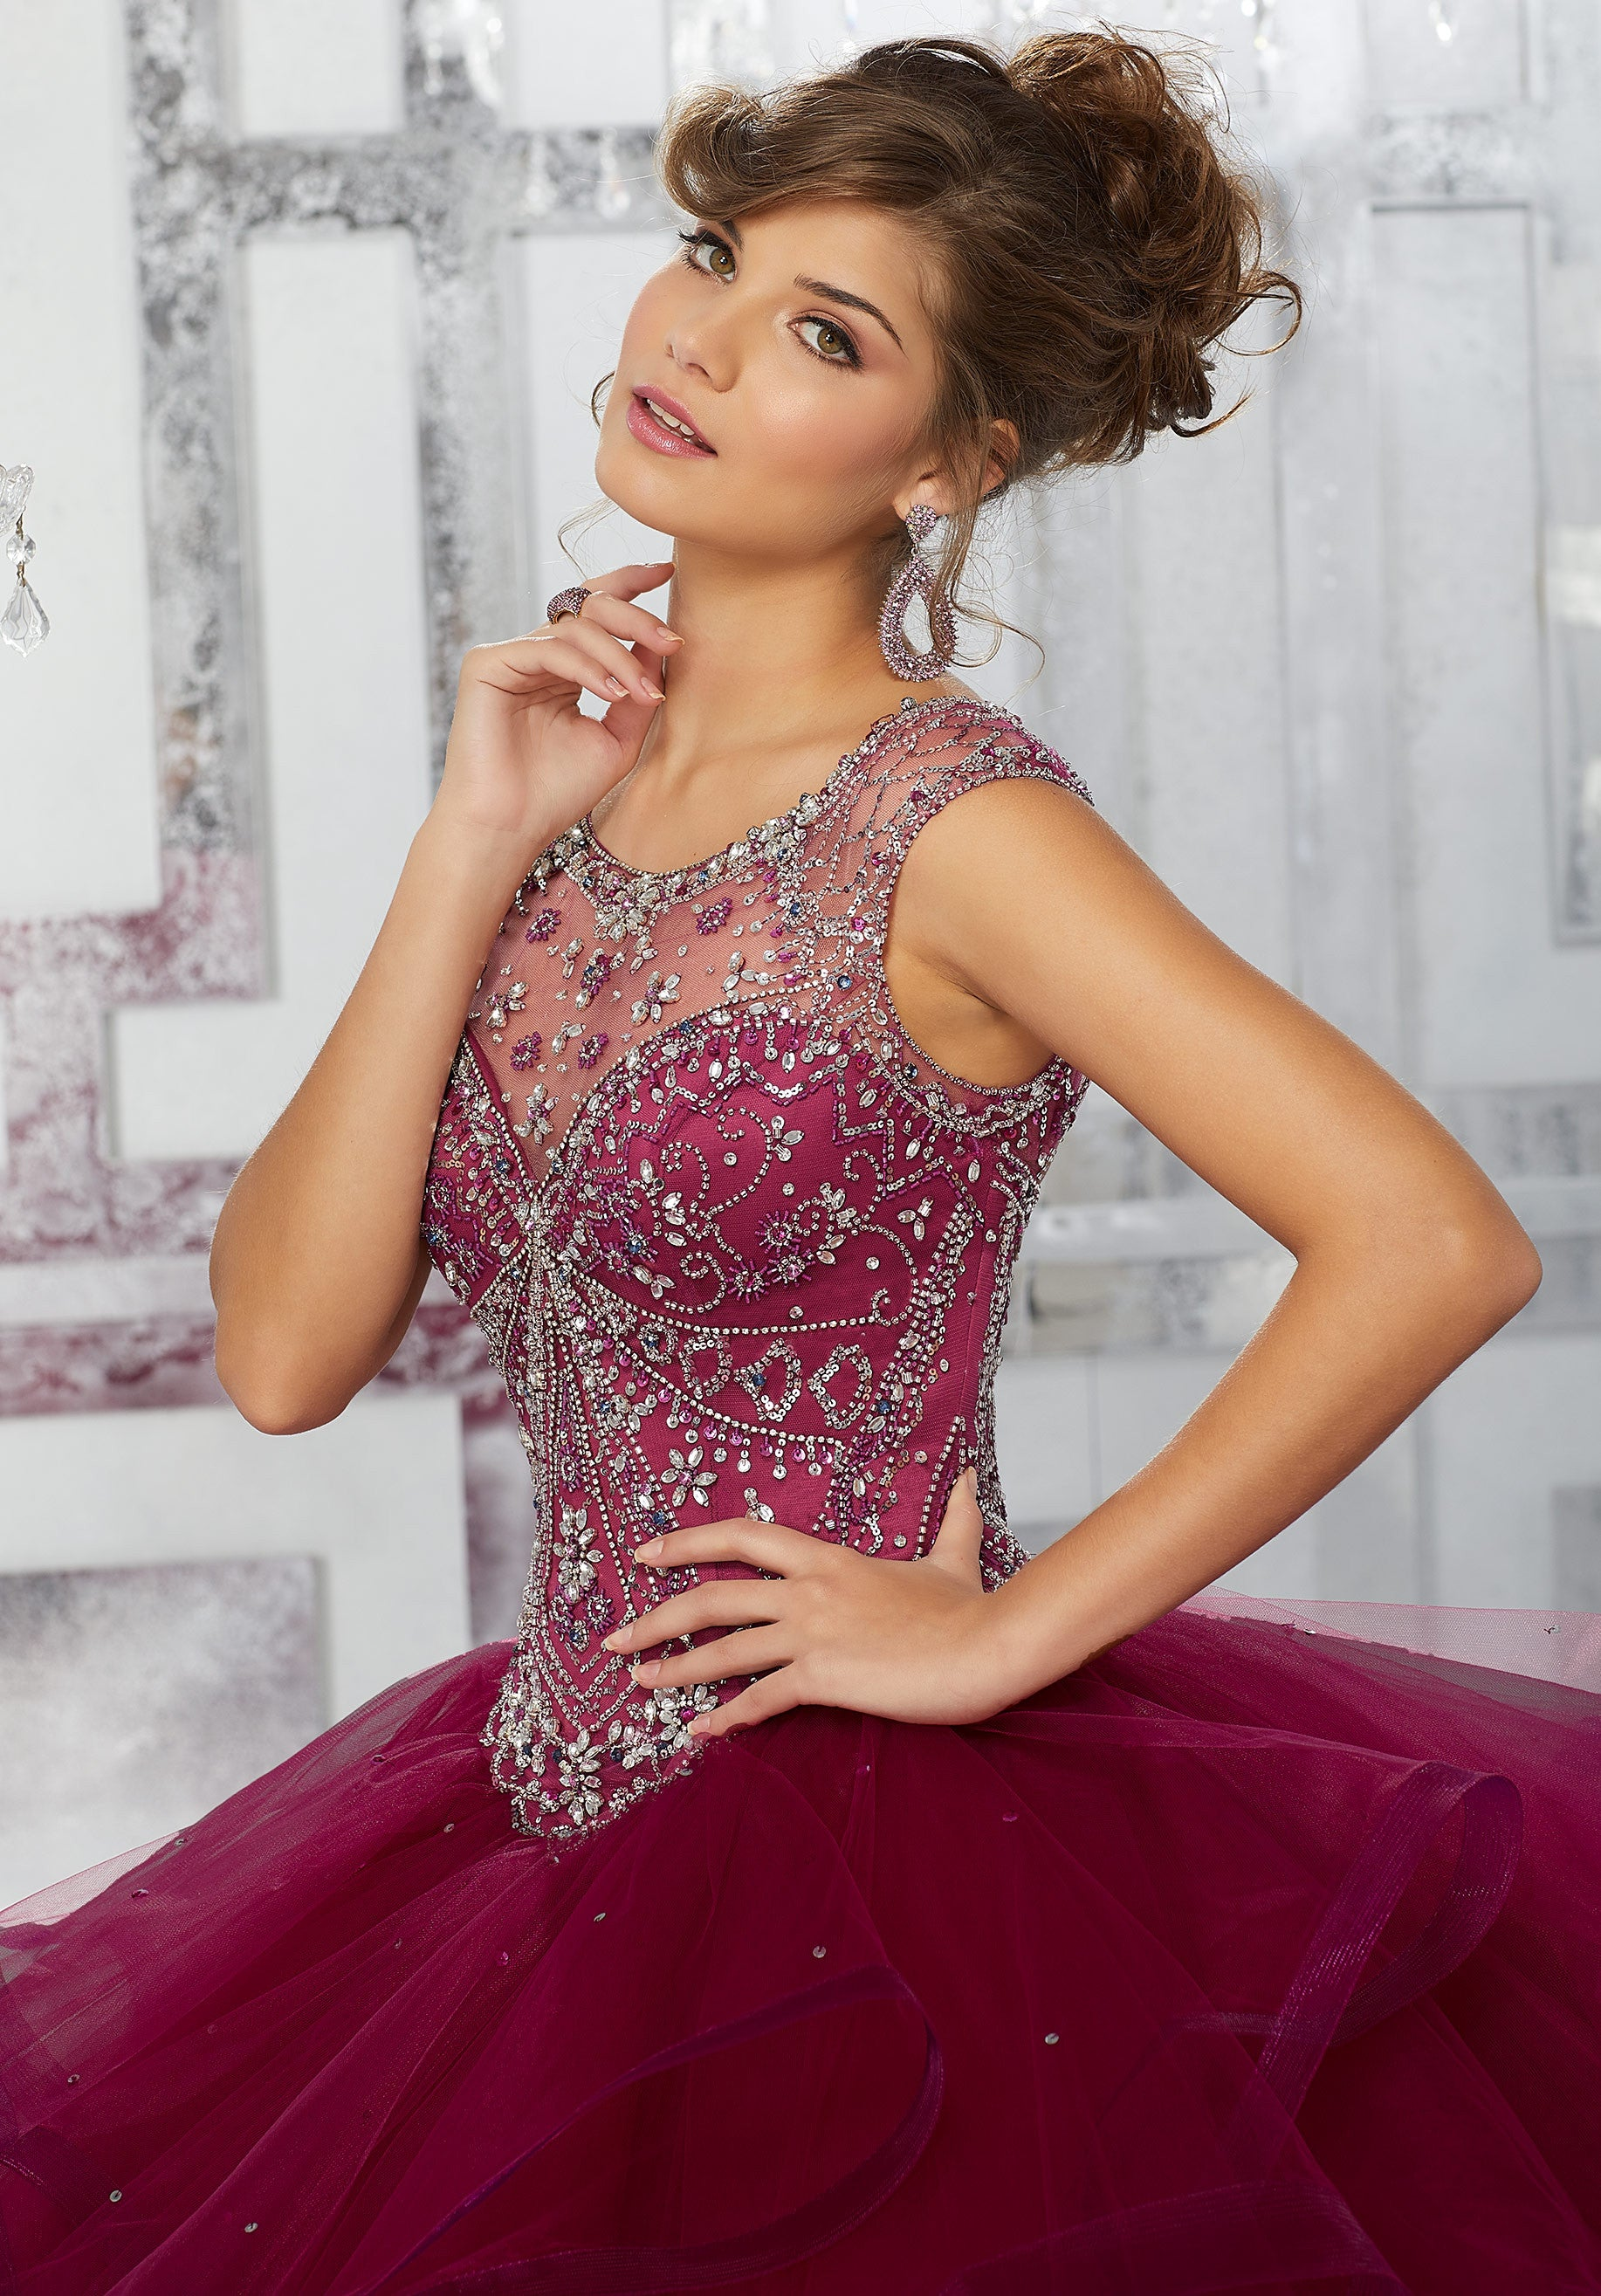 89141 Jeweled Net Bodice on a Flounced Tulle Ball Gown Skirt